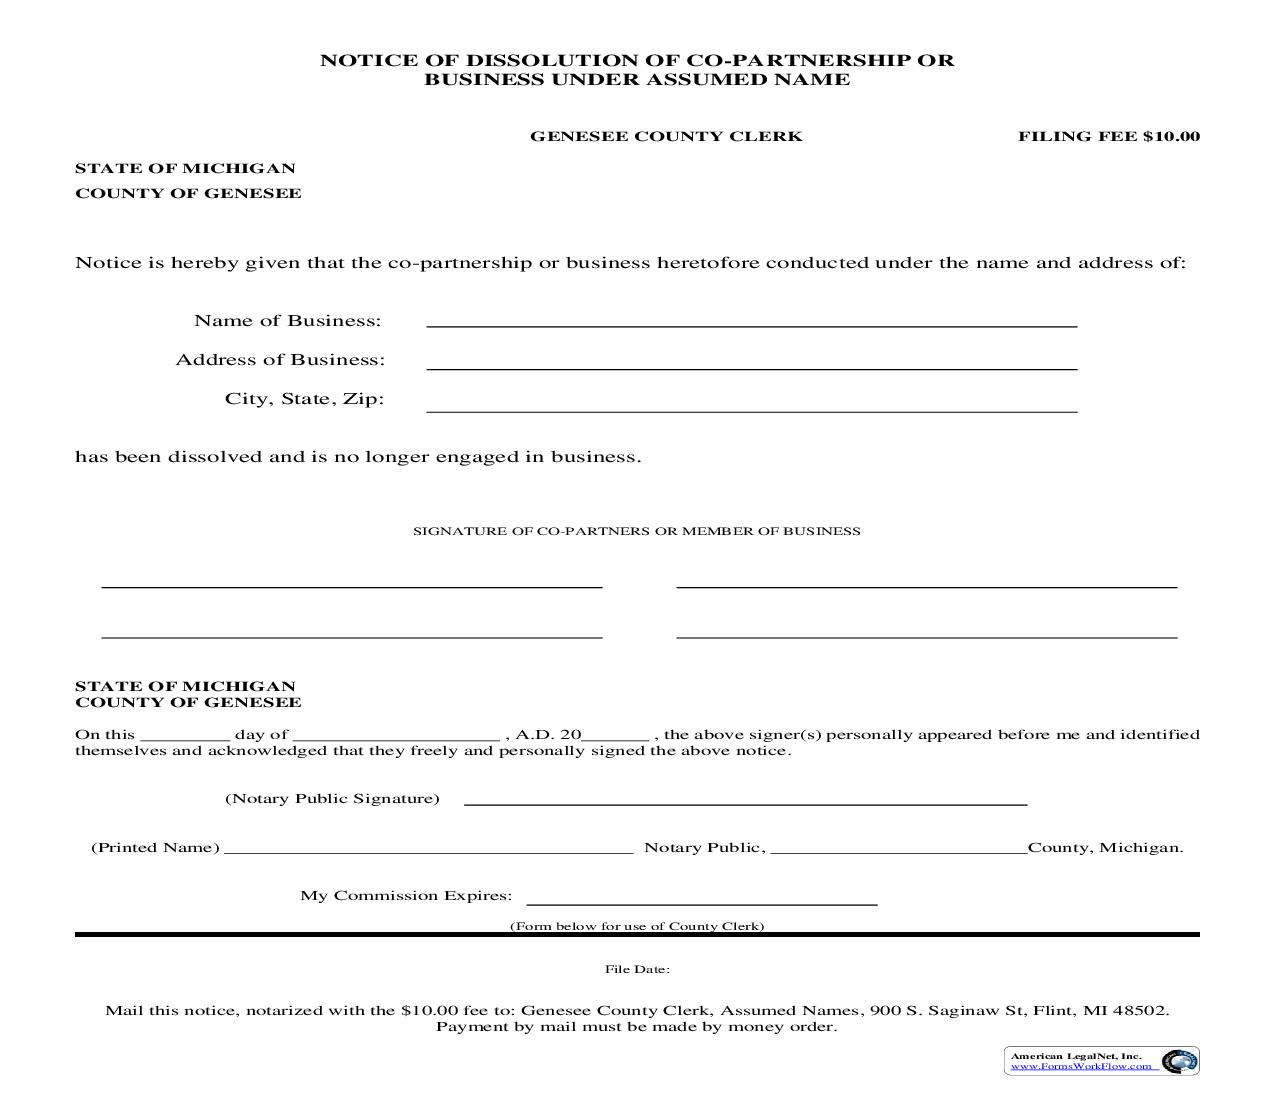 Notice Of Dissolution Of Co-Partnership Or Business Under Assumed Name | Pdf Fpdf Doc Docx | Michigan